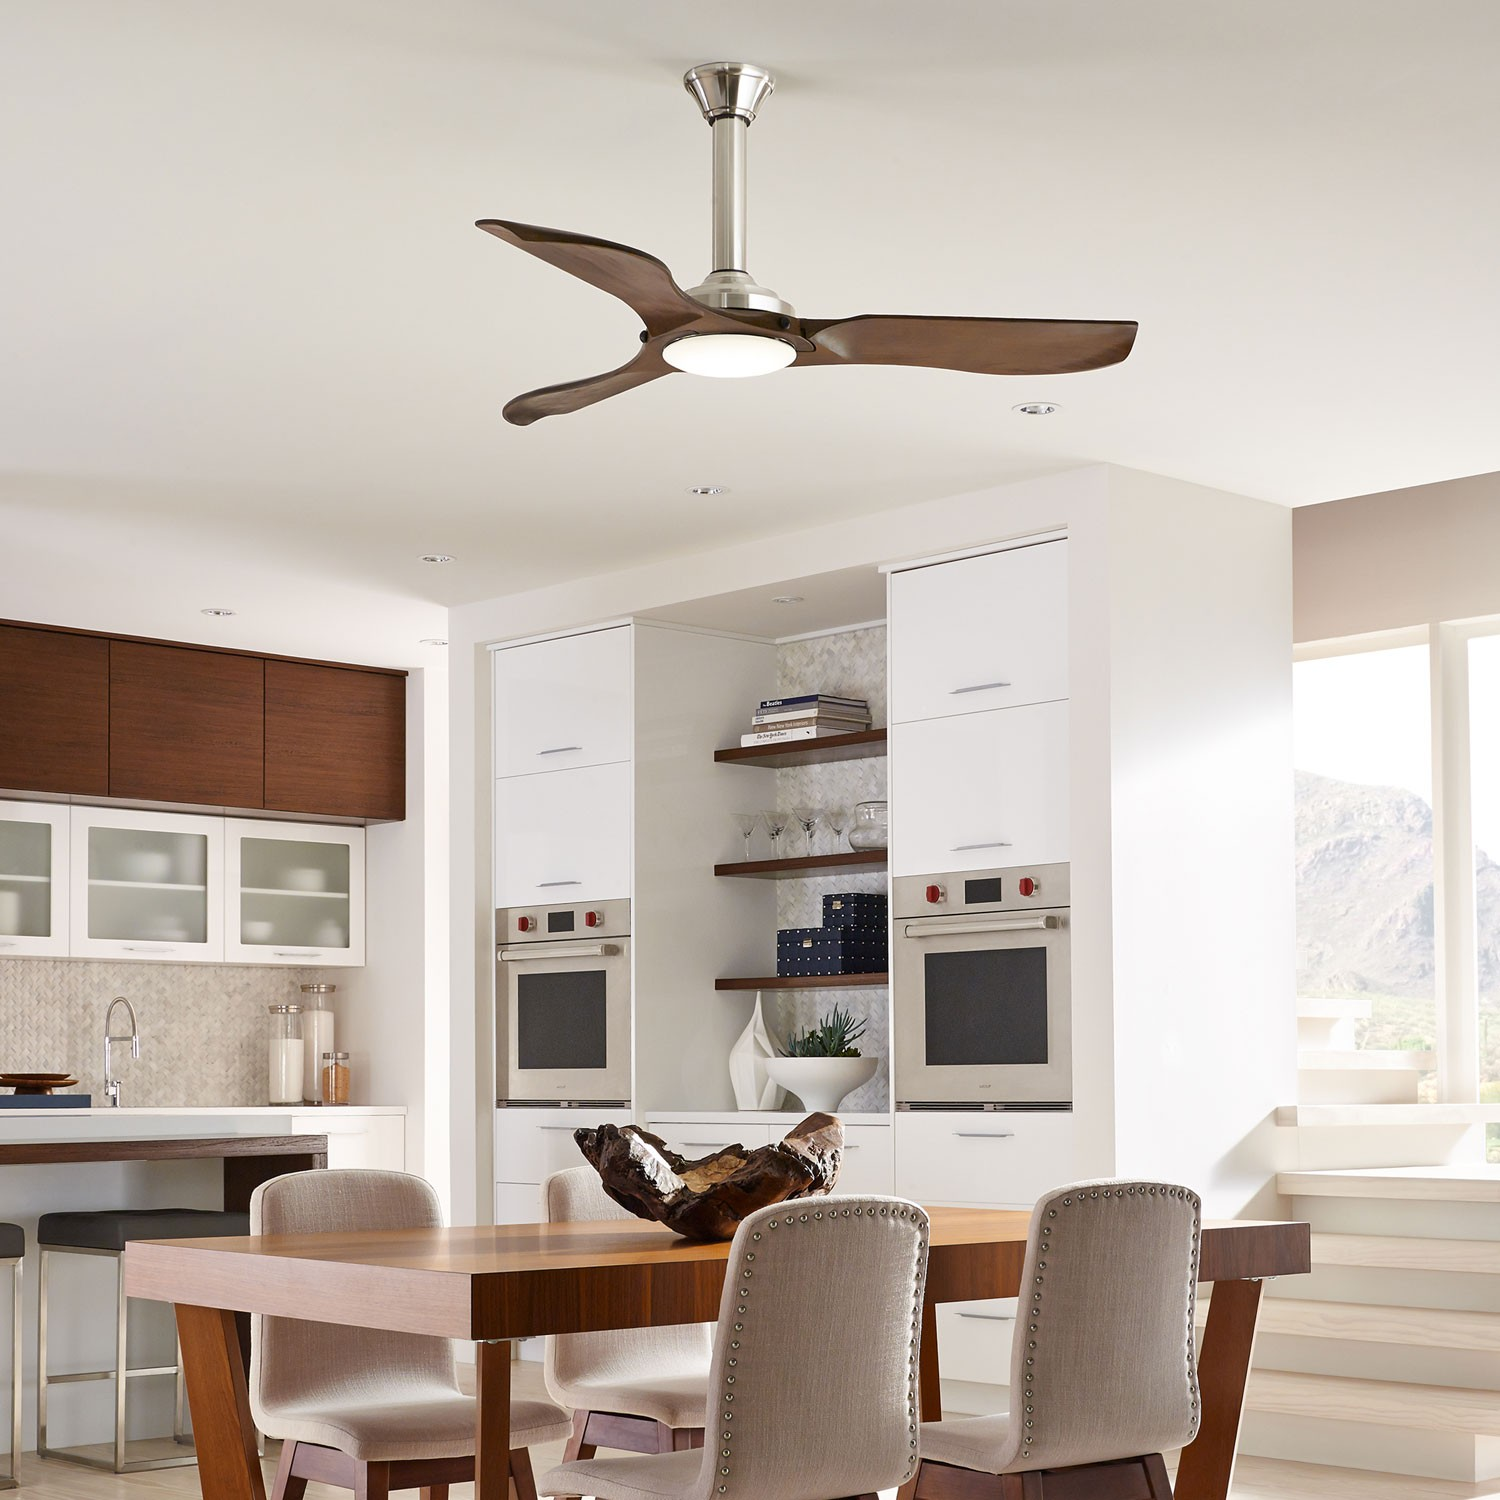 clarity max ceiling fan. modern led fans |ylighting clarity max ceiling fan c